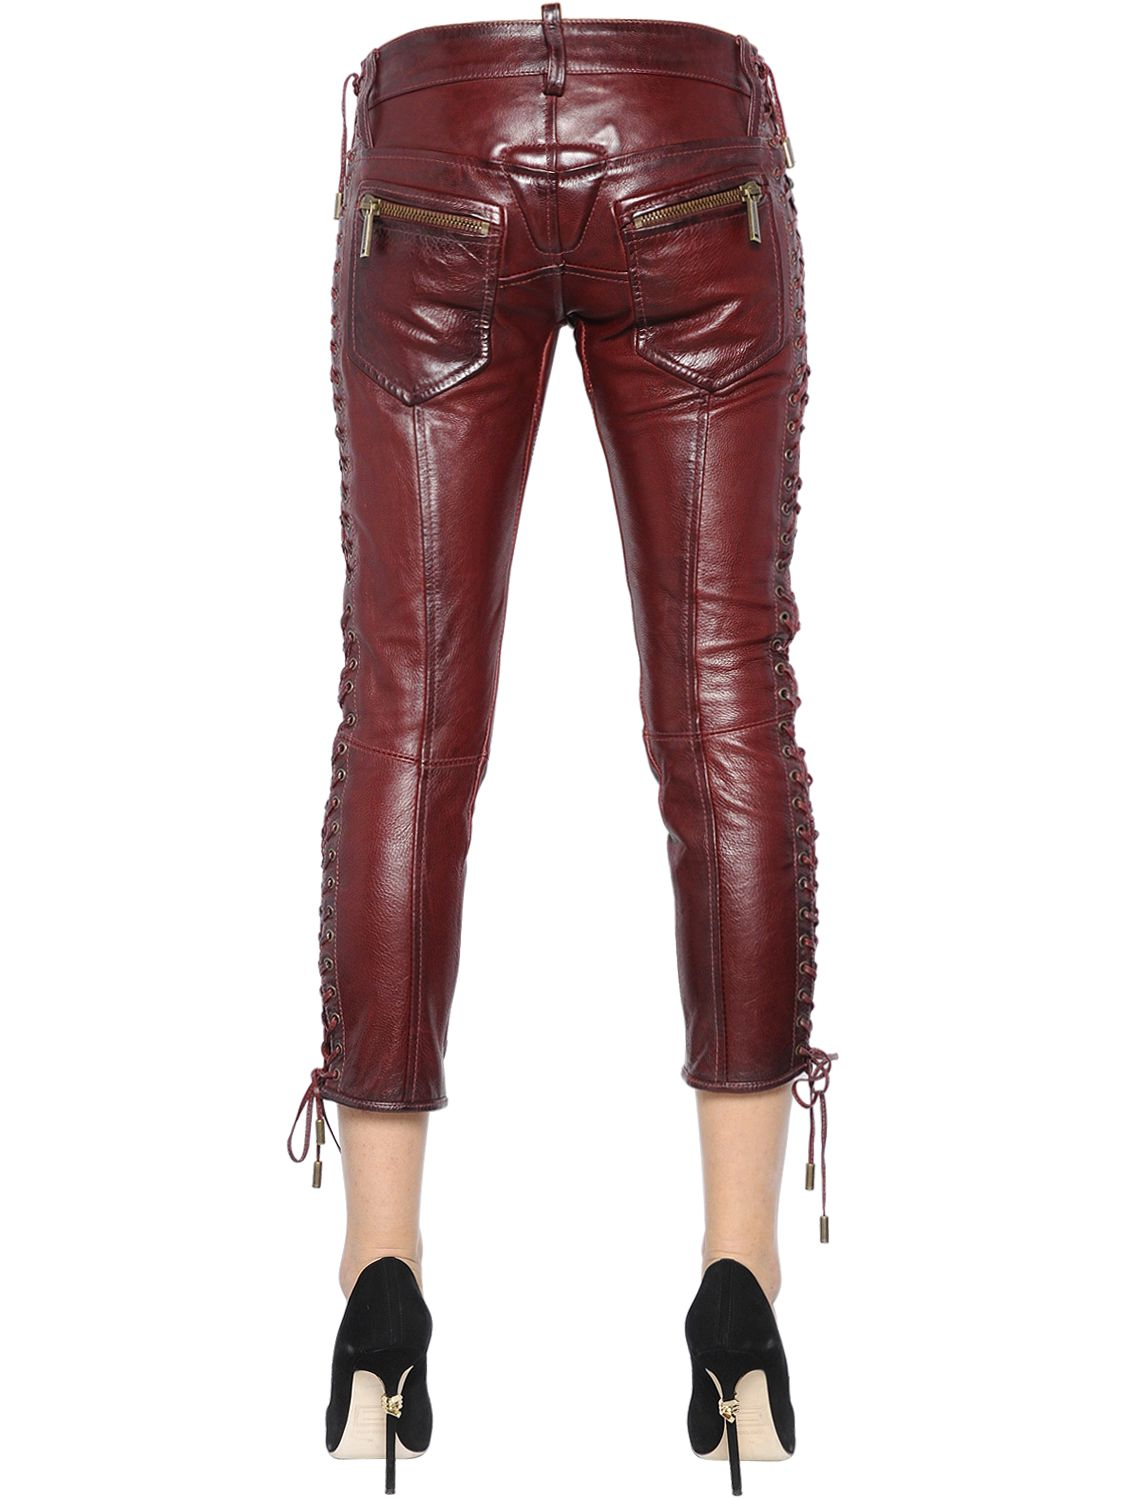 5cf28e0b5fa6 Lyst - DSquared² Lace-up Nappa Leather Pants in Purple